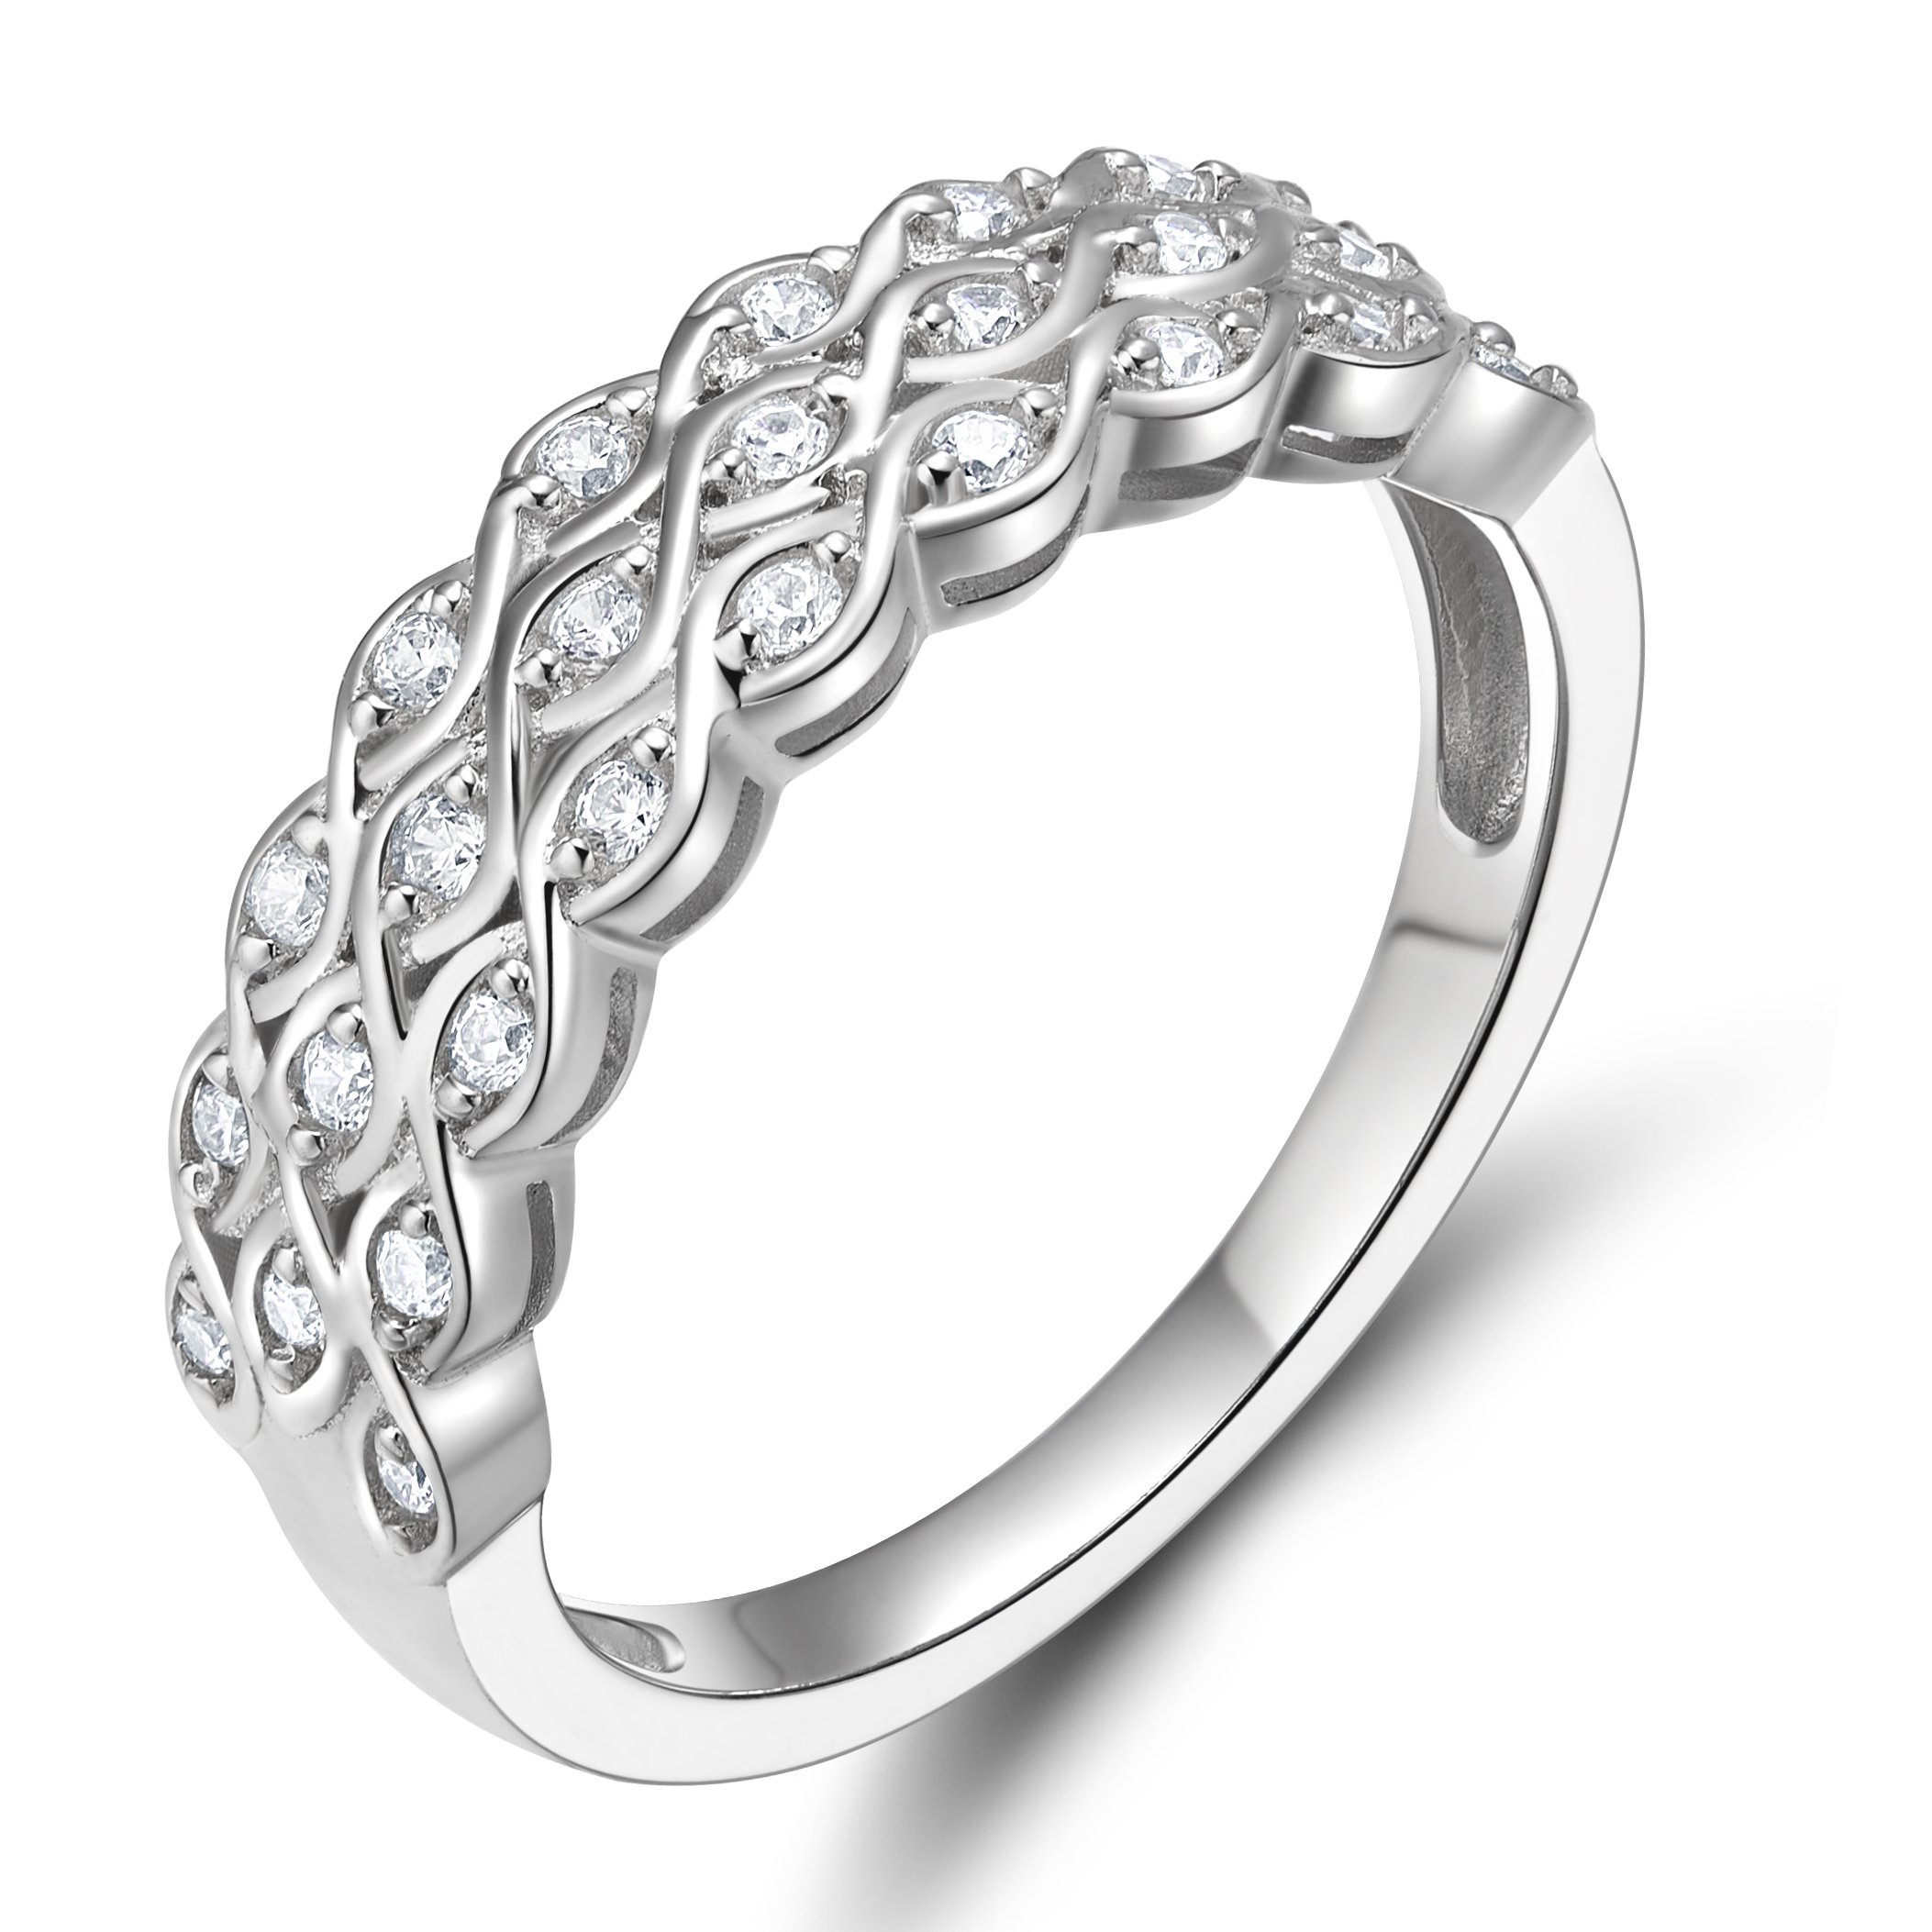 EAMTI 925 Sterling Silver Cubic Zirconia Eternity Band Multi Row Anniversary Ring for Women Size 9